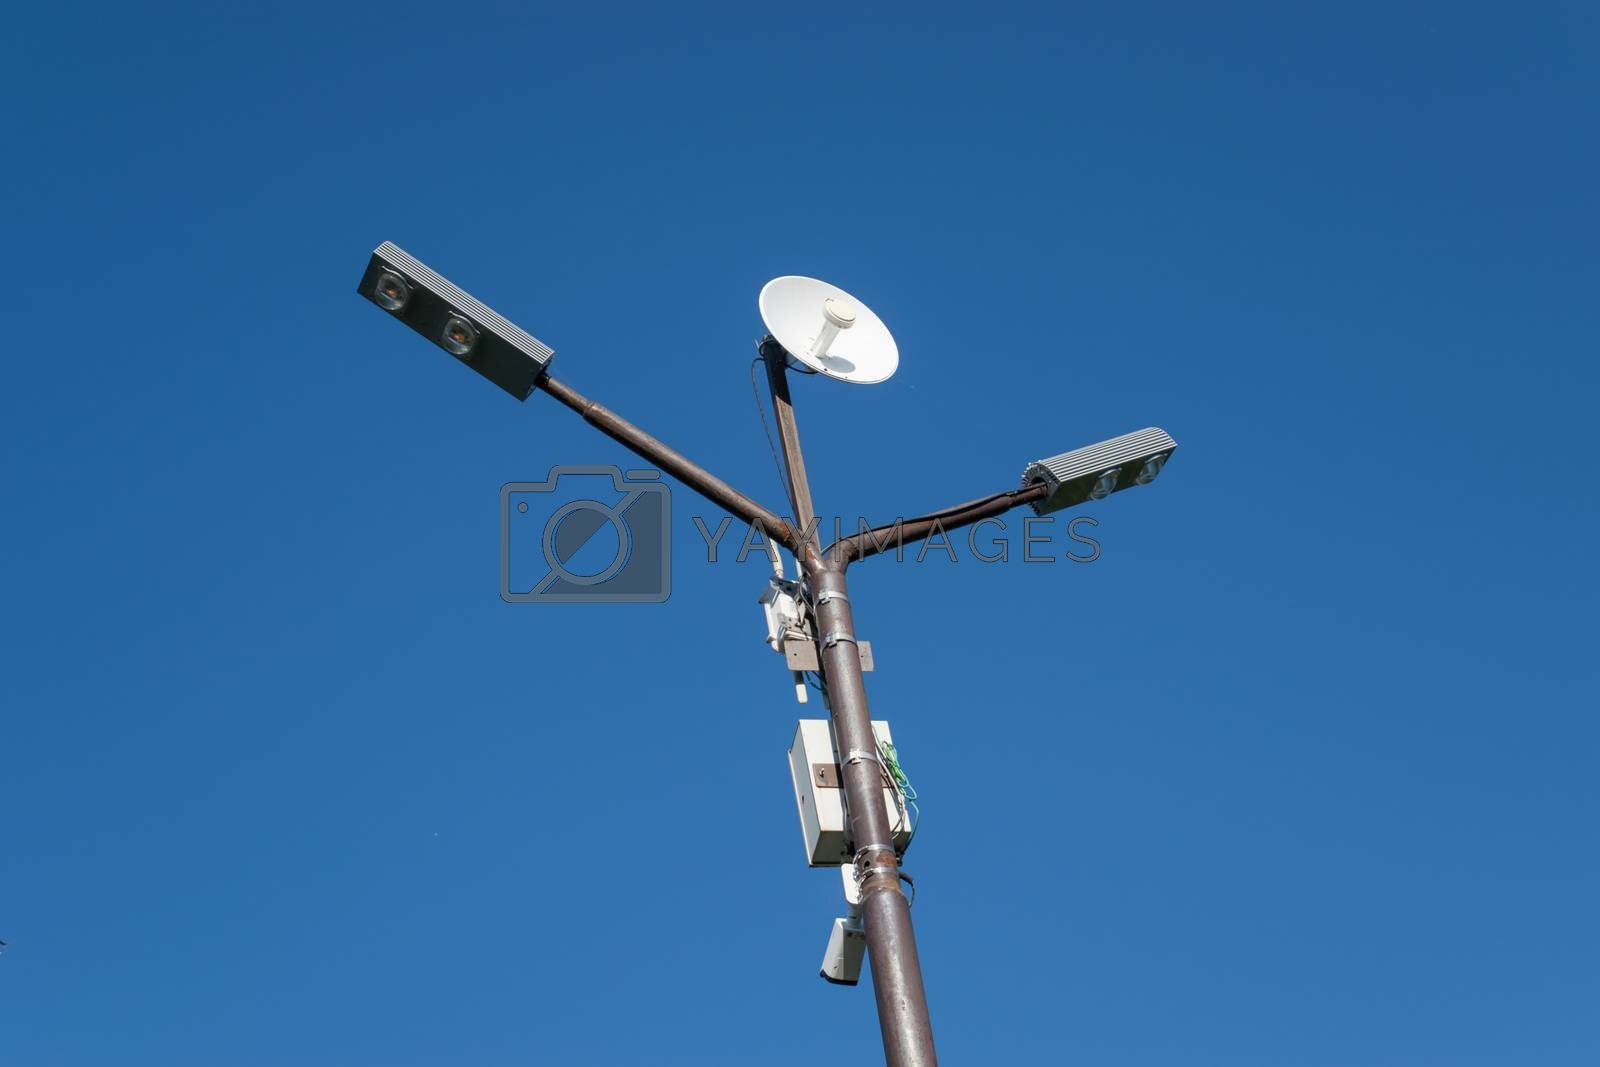 Lamppost with an antenna mounted on it. Pillar against the blue sky.